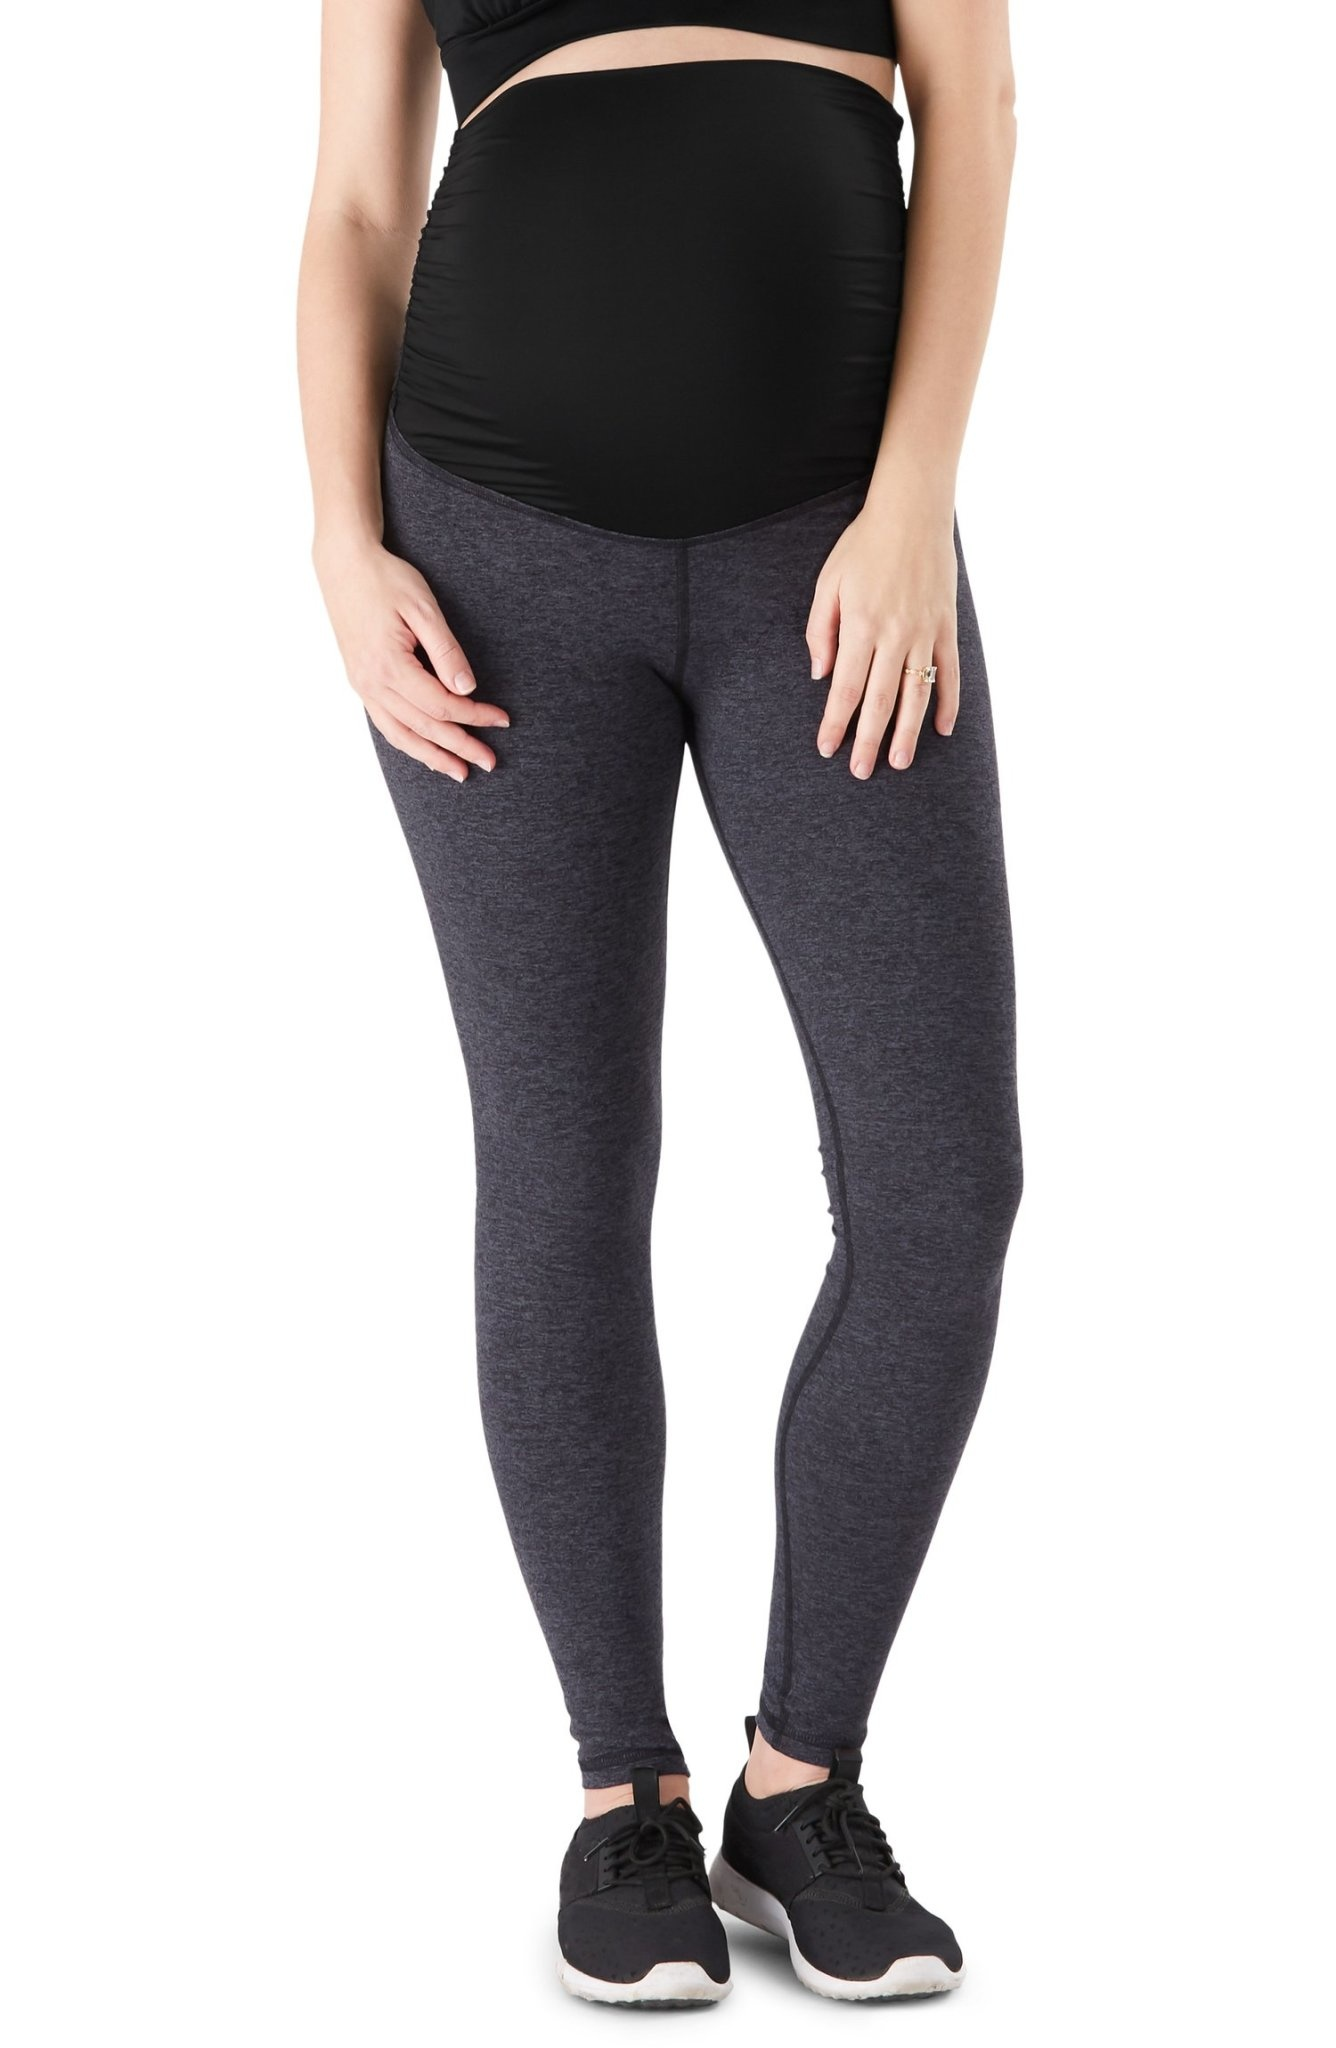 Belly Bandit Active Support Essential Leggings - Charcoal